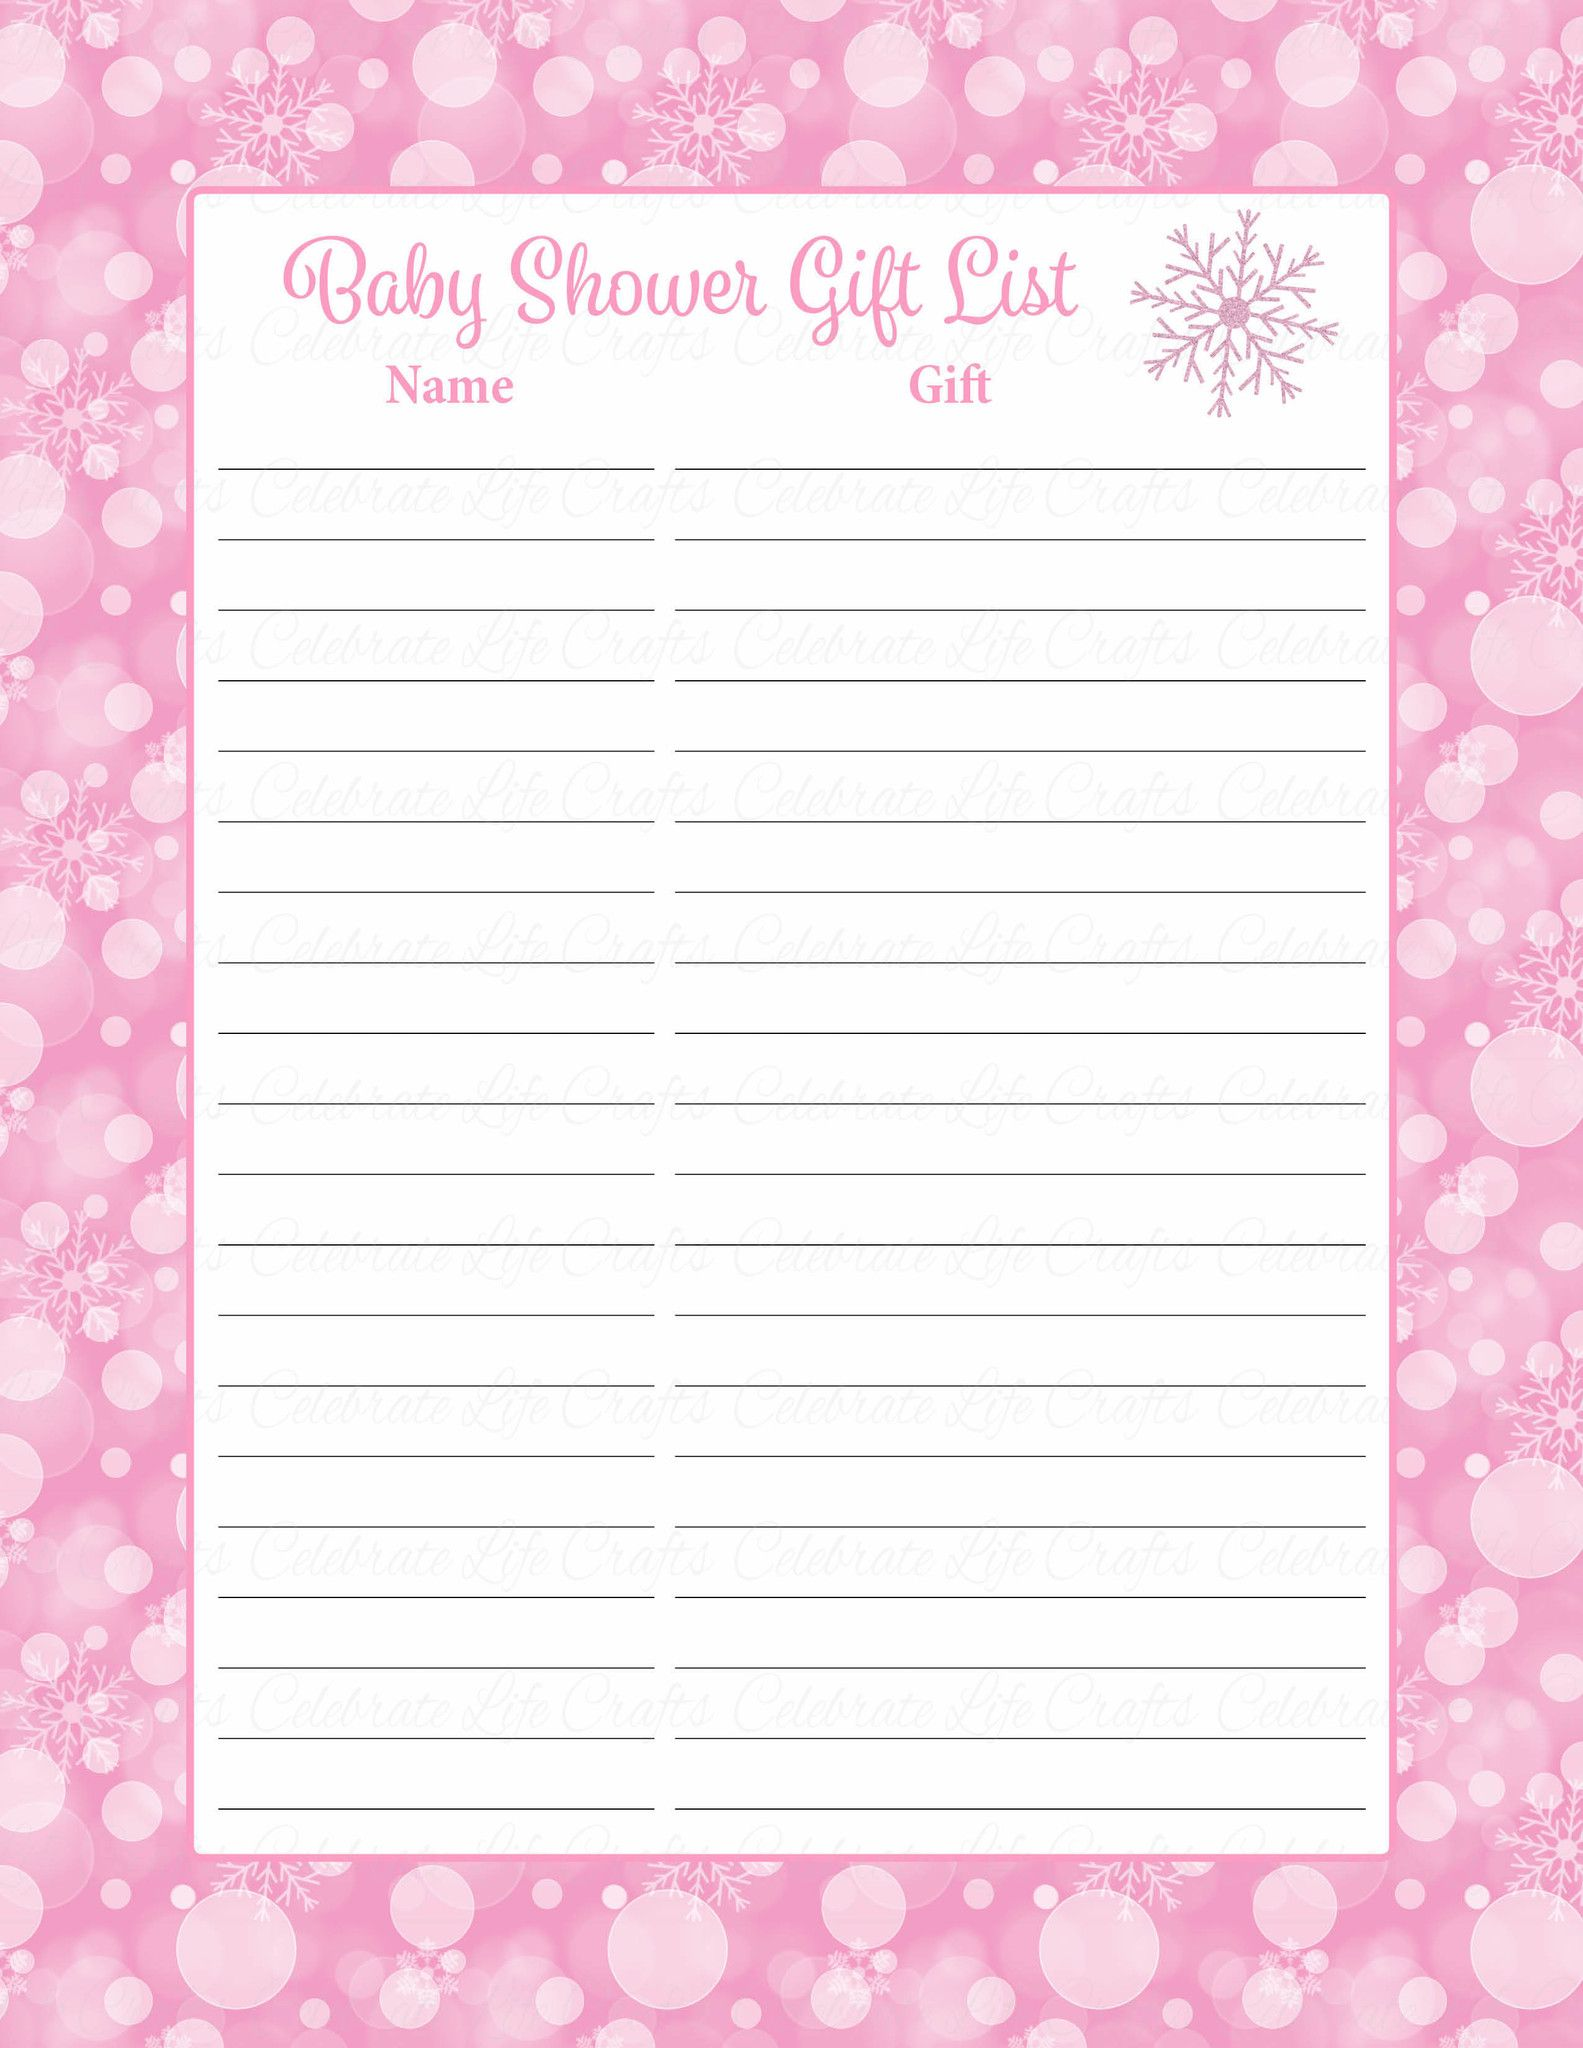 photograph relating to Printable Baby Shower Gift List referred to as Kid Shower Present Listing Preset - Printable Obtain - Purple Bokeh